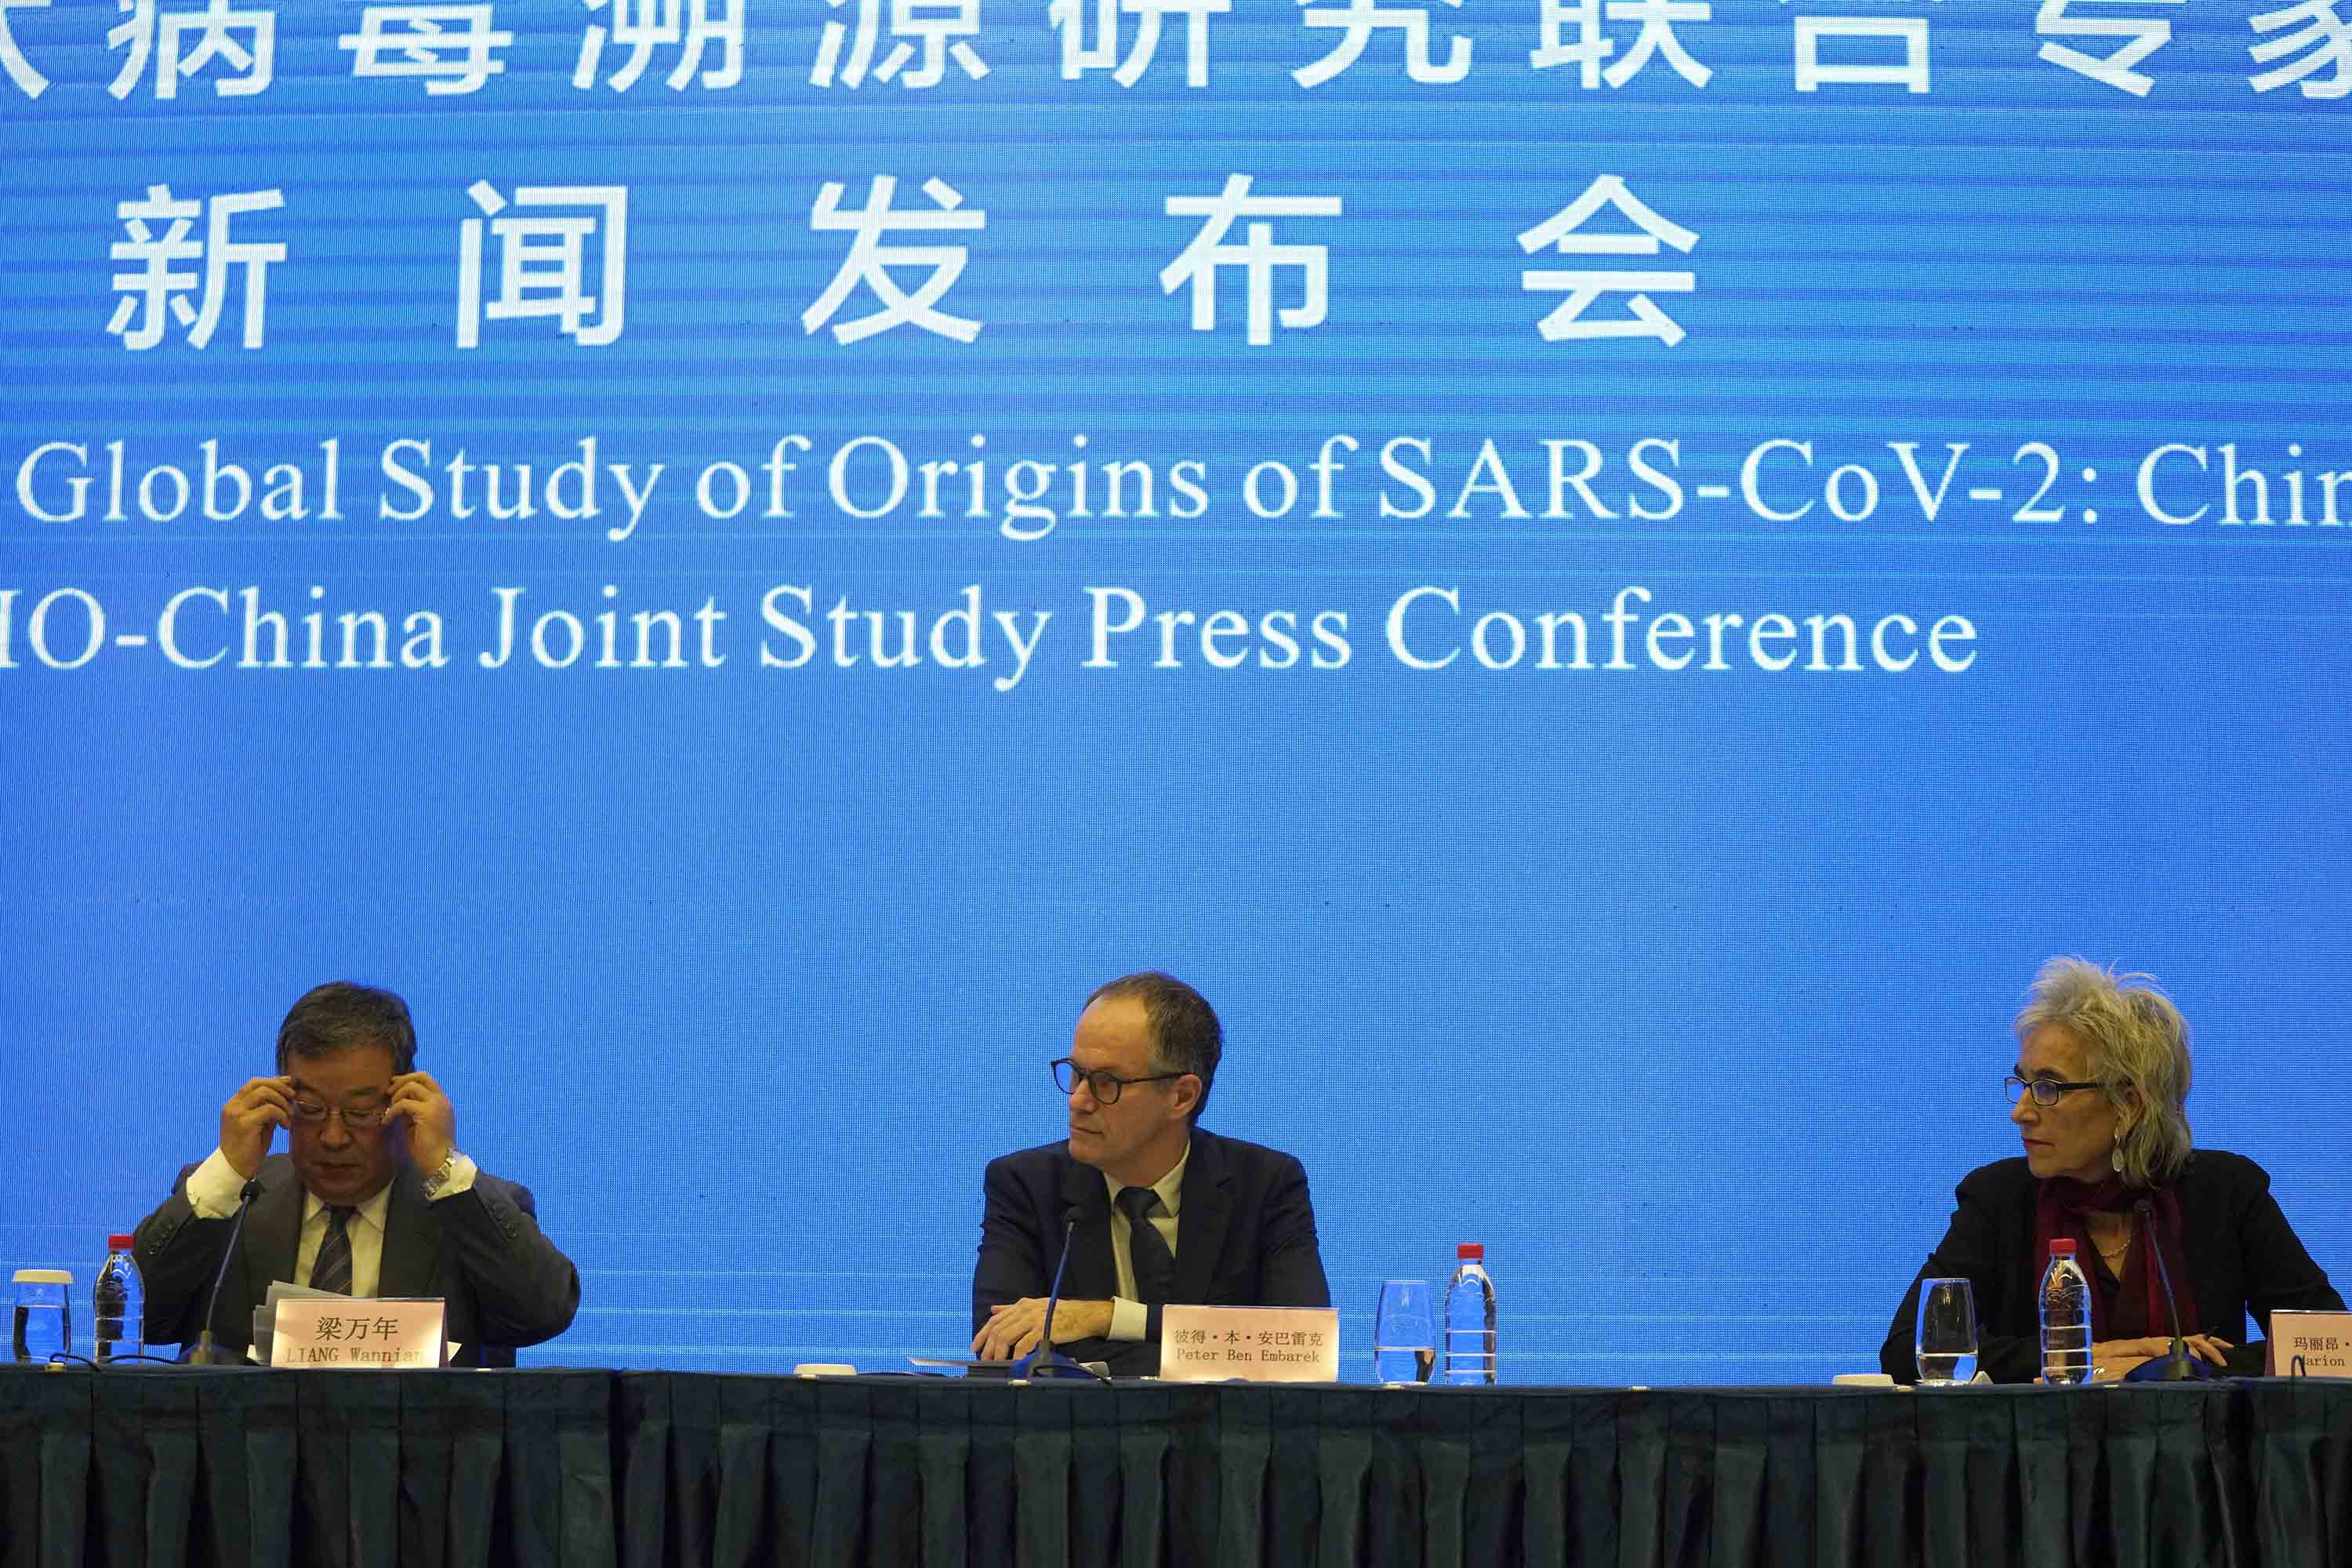 Chinese health official Liang Wannian, left, is seen during a press conference with World Health Organization representatives Peter Ben Embarek, center, and Marion Koopmans, in Wuhan, China, on February 9.